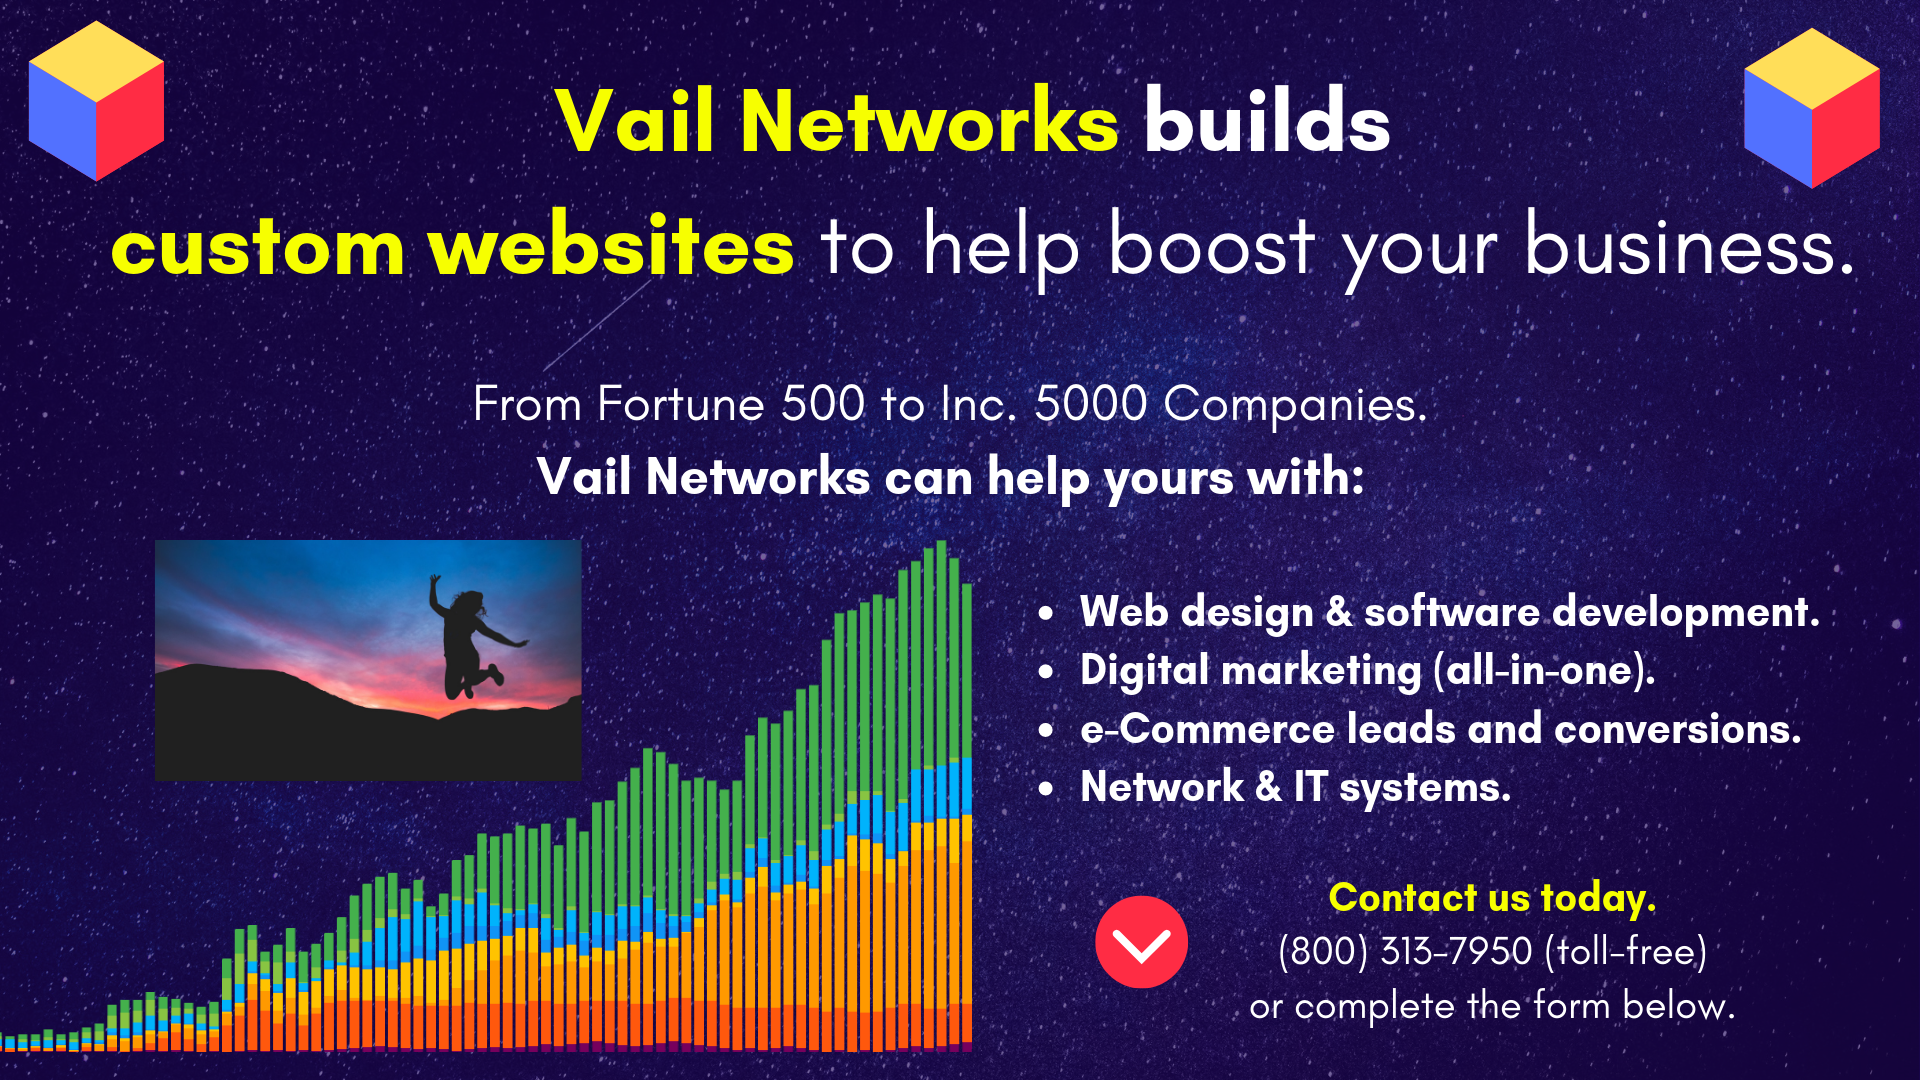 company to help with website development: vailnetworks.com